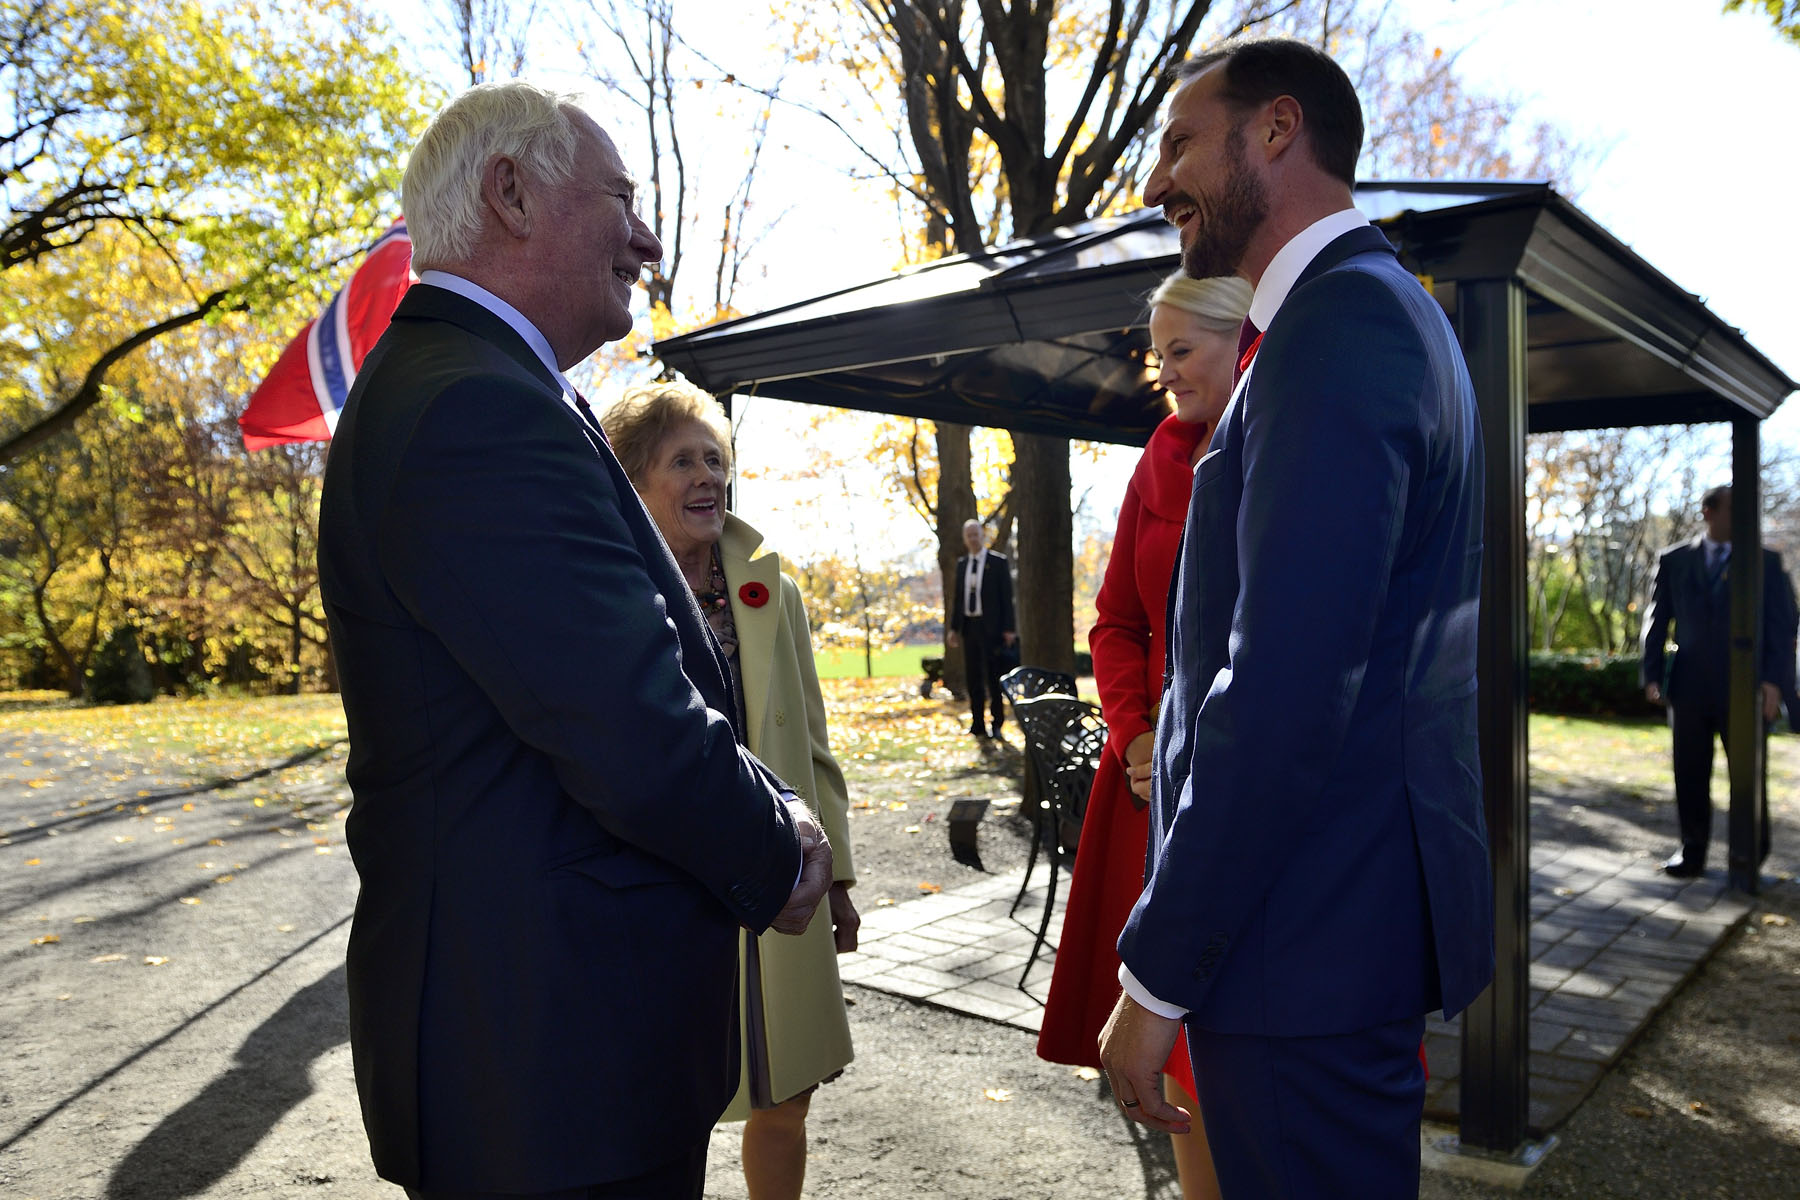 Their Excellencies the Right Honourable David Johnston, Governor General of Canada, and Mrs. Sharon Johnston met with Their Royal Highnesses The Crown Prince and The Crown Princess of Norway at Rideau Hall.